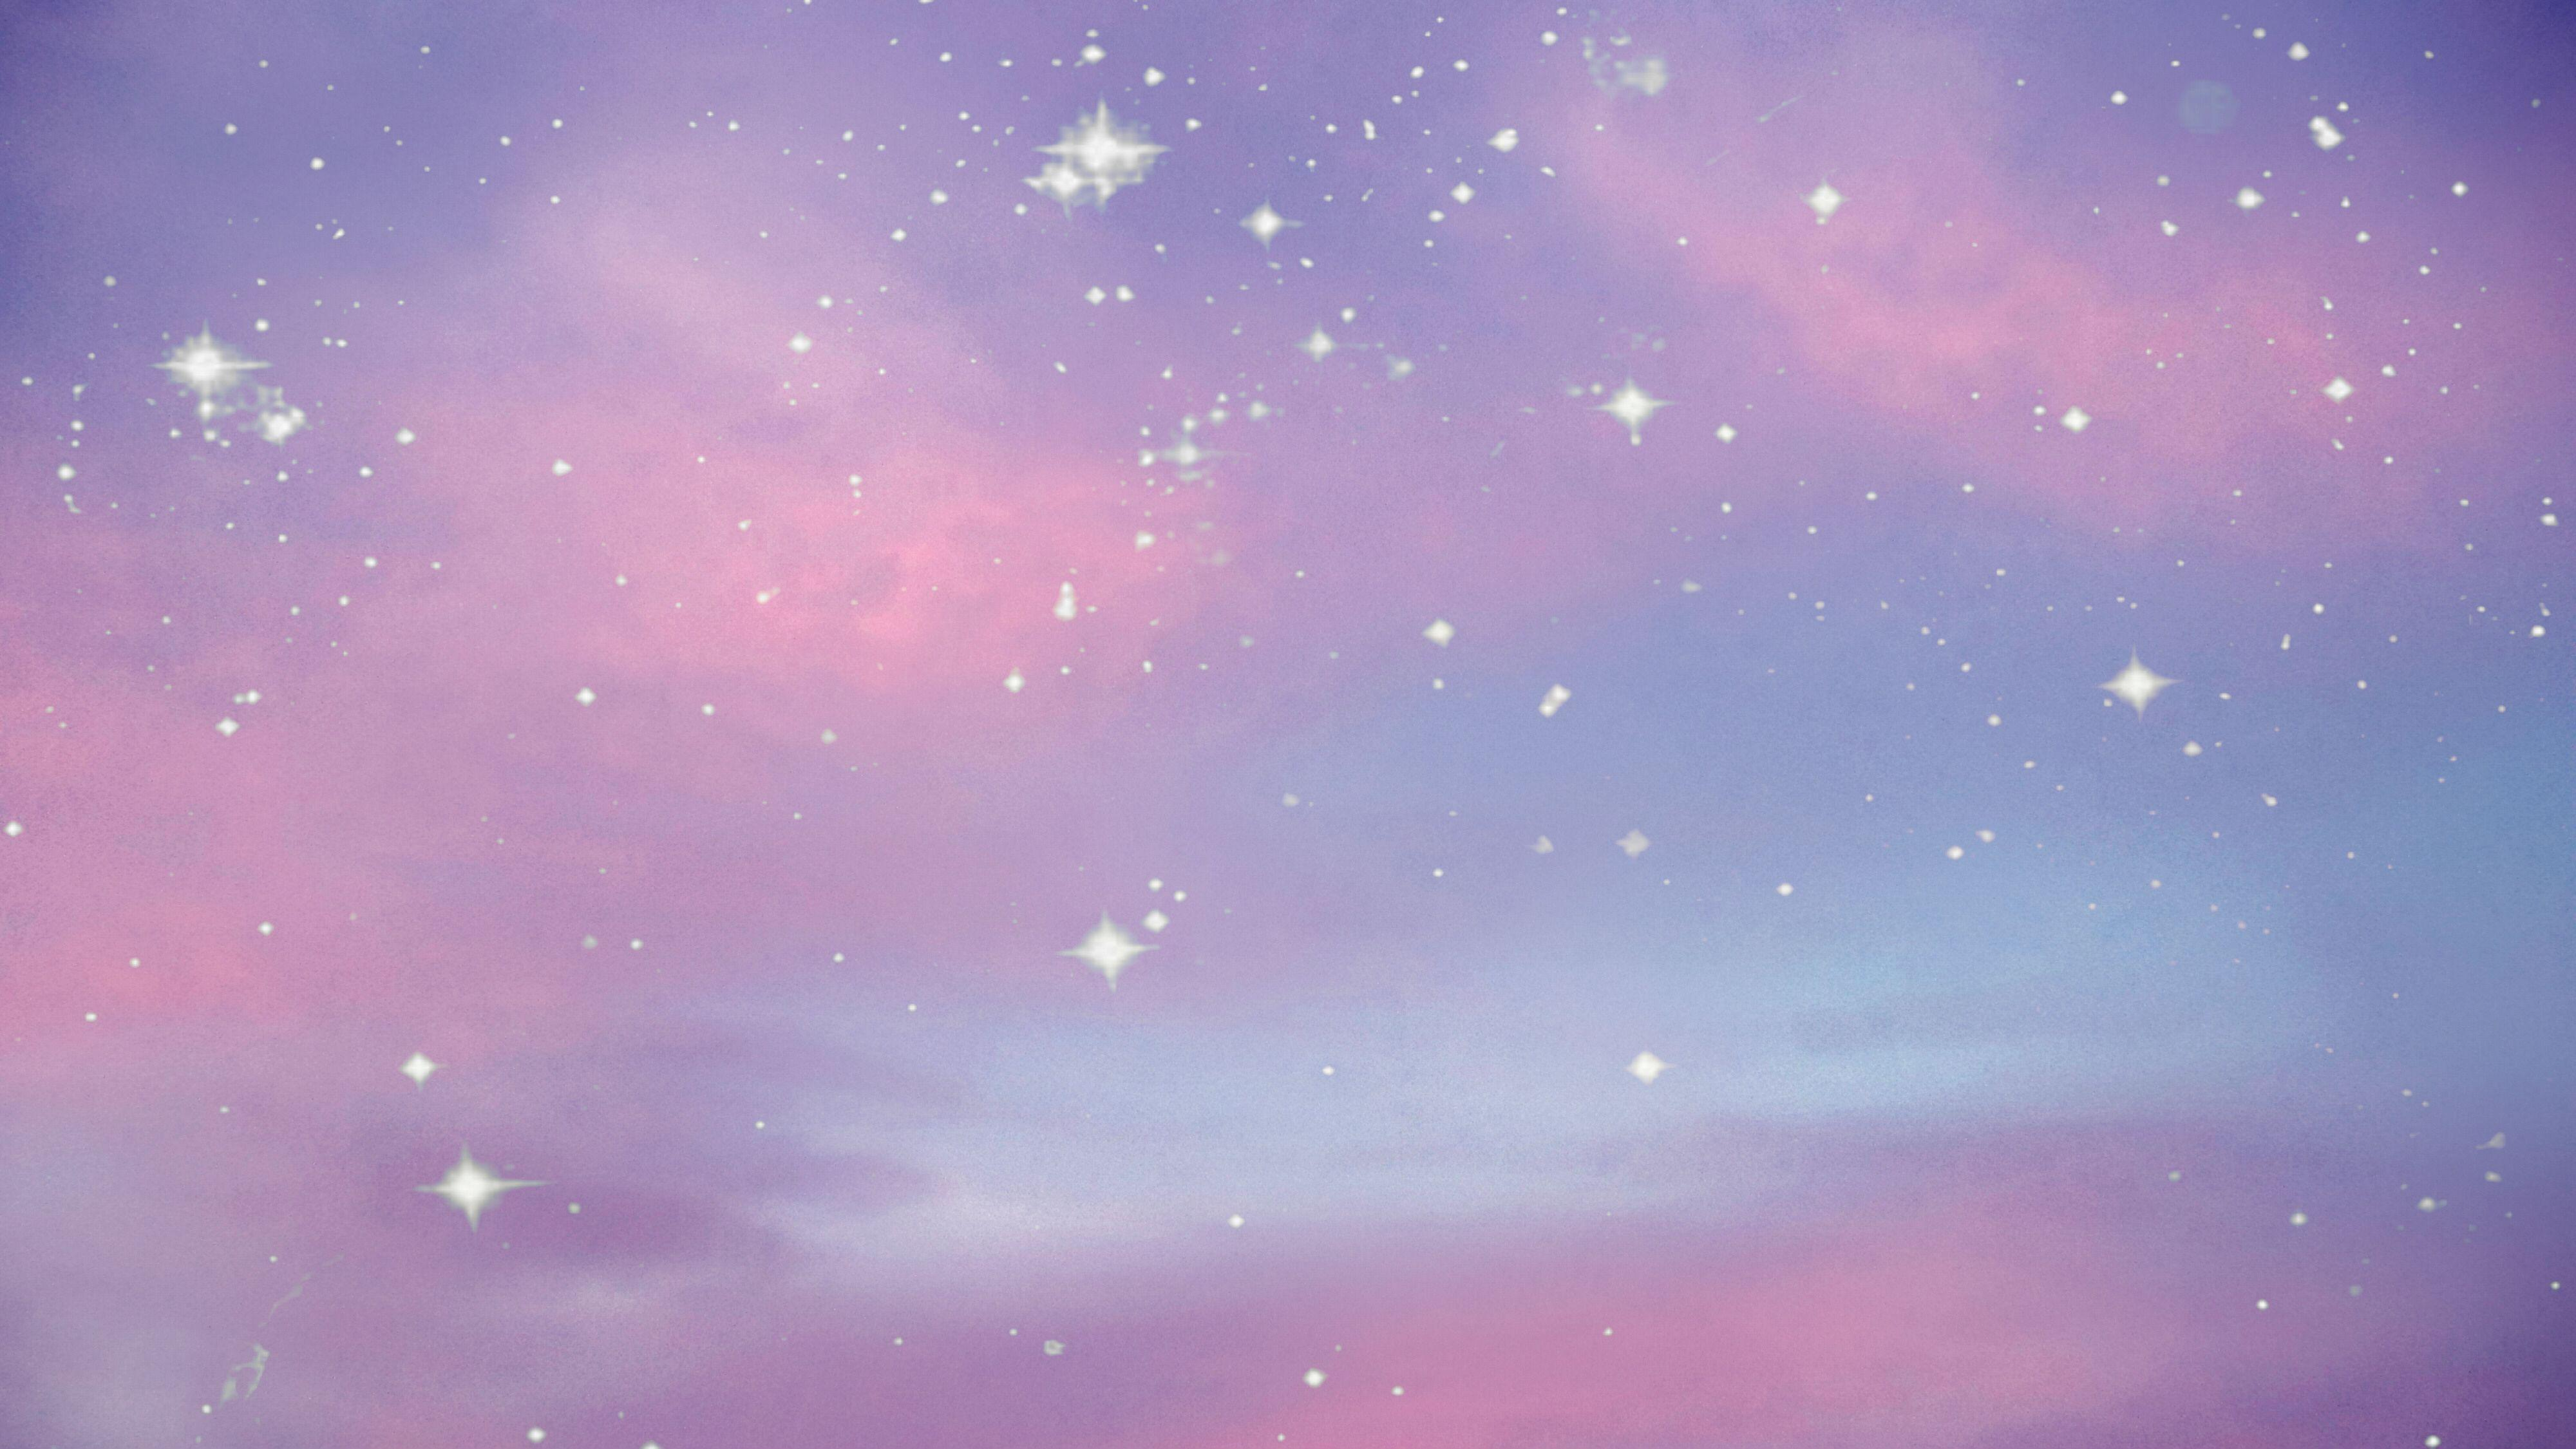 Aesthetic Purple Laptop Wallpapers Wallpaper Cave Enjoy those summer vibes with these cute. aesthetic purple laptop wallpapers